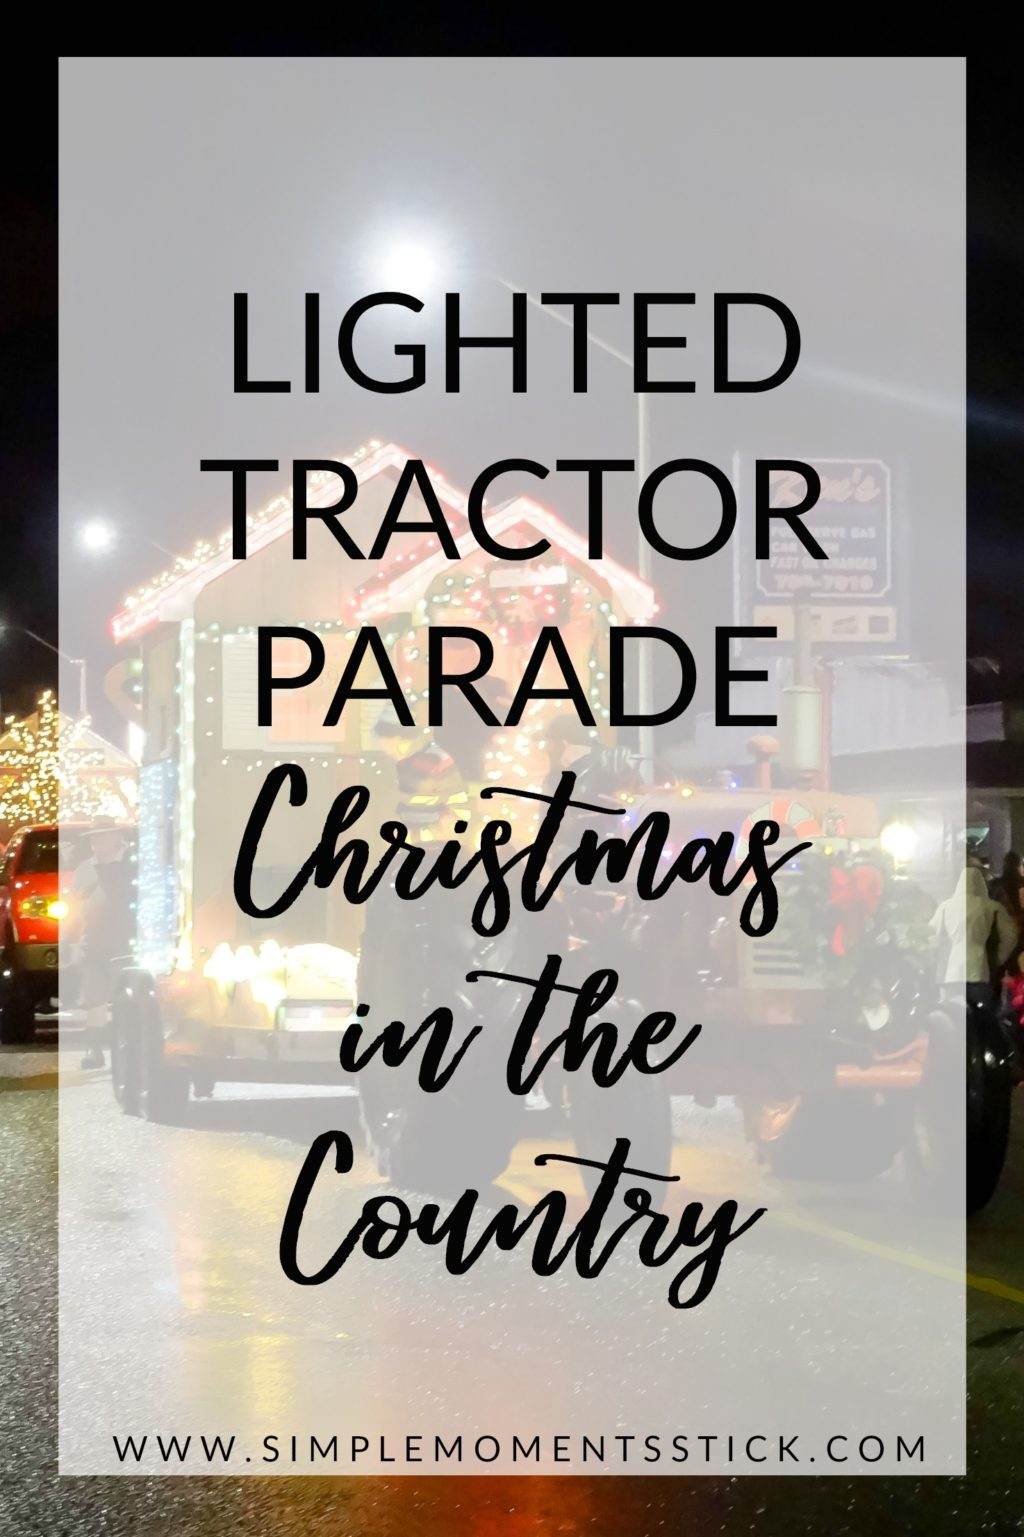 There isn't a lot better than Christmas in the country! One of the best events is the lighted tractor parade!